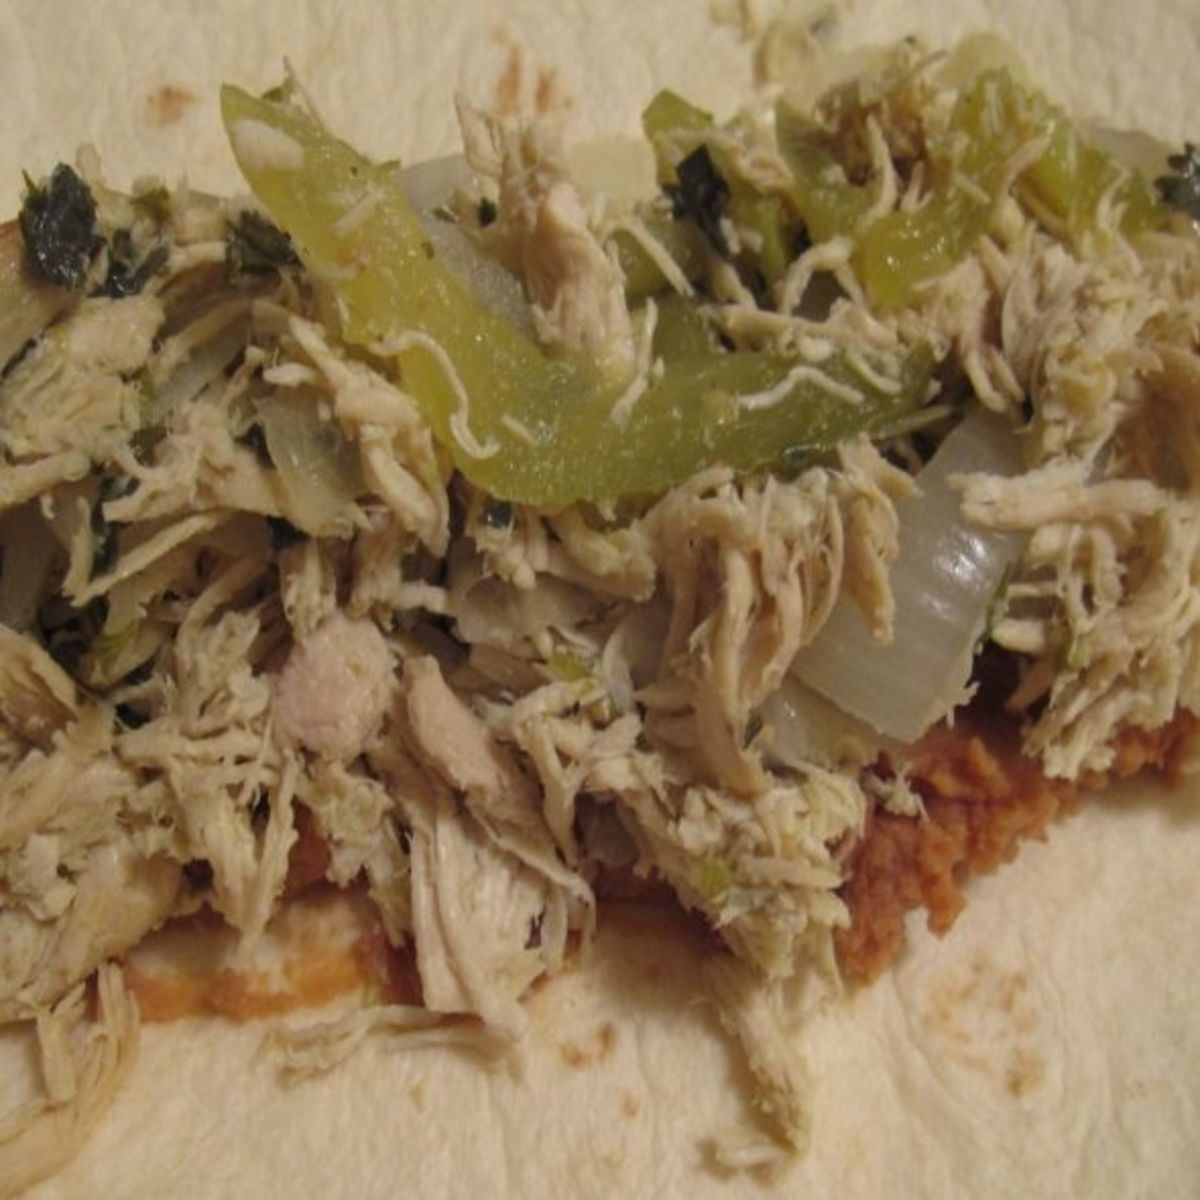 A flour tortilla with refried beans and shredded chicken in salsa.